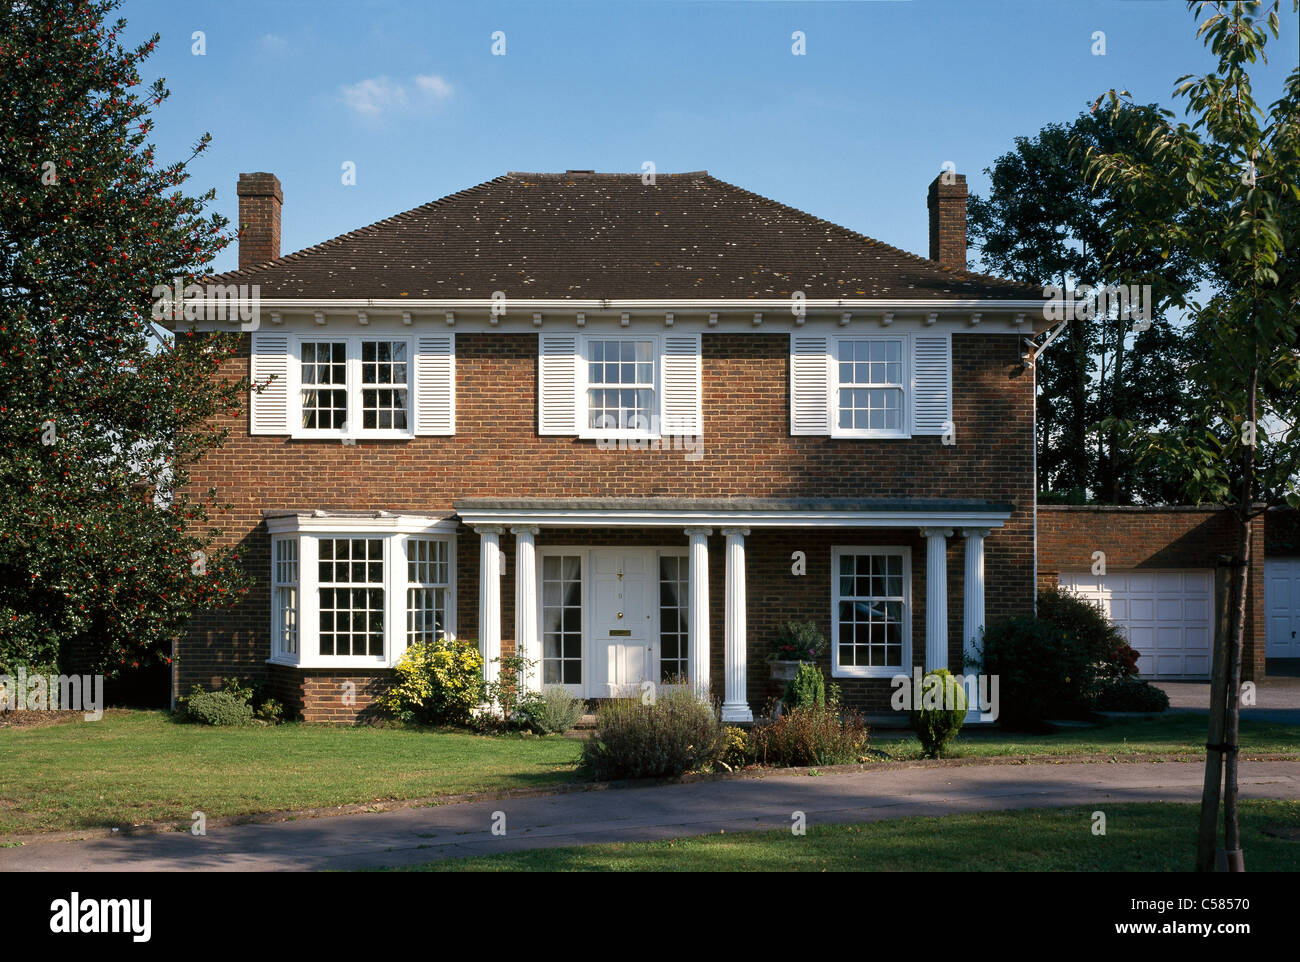 Detached house with portico columns and double garage for Where to buy columns for house